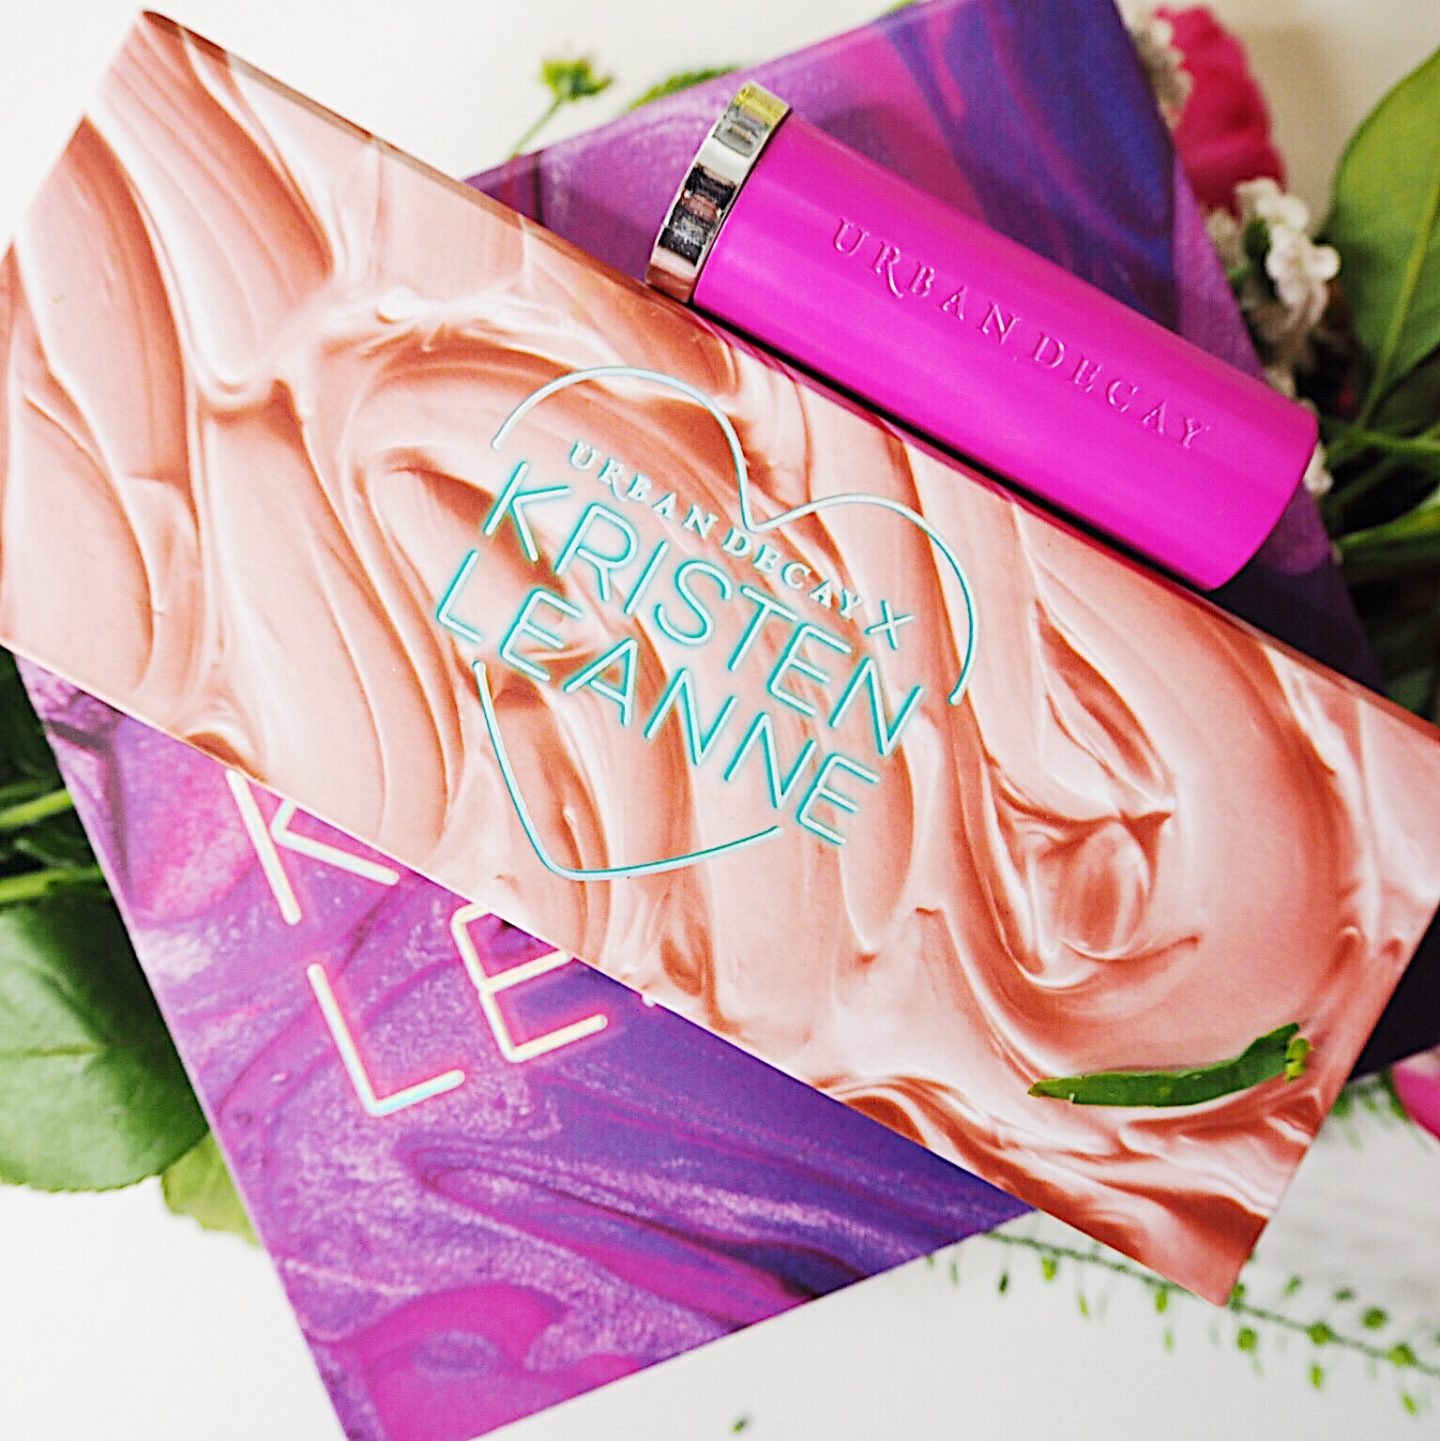 UD X Kristen Leanne – Swatches and First Impressions